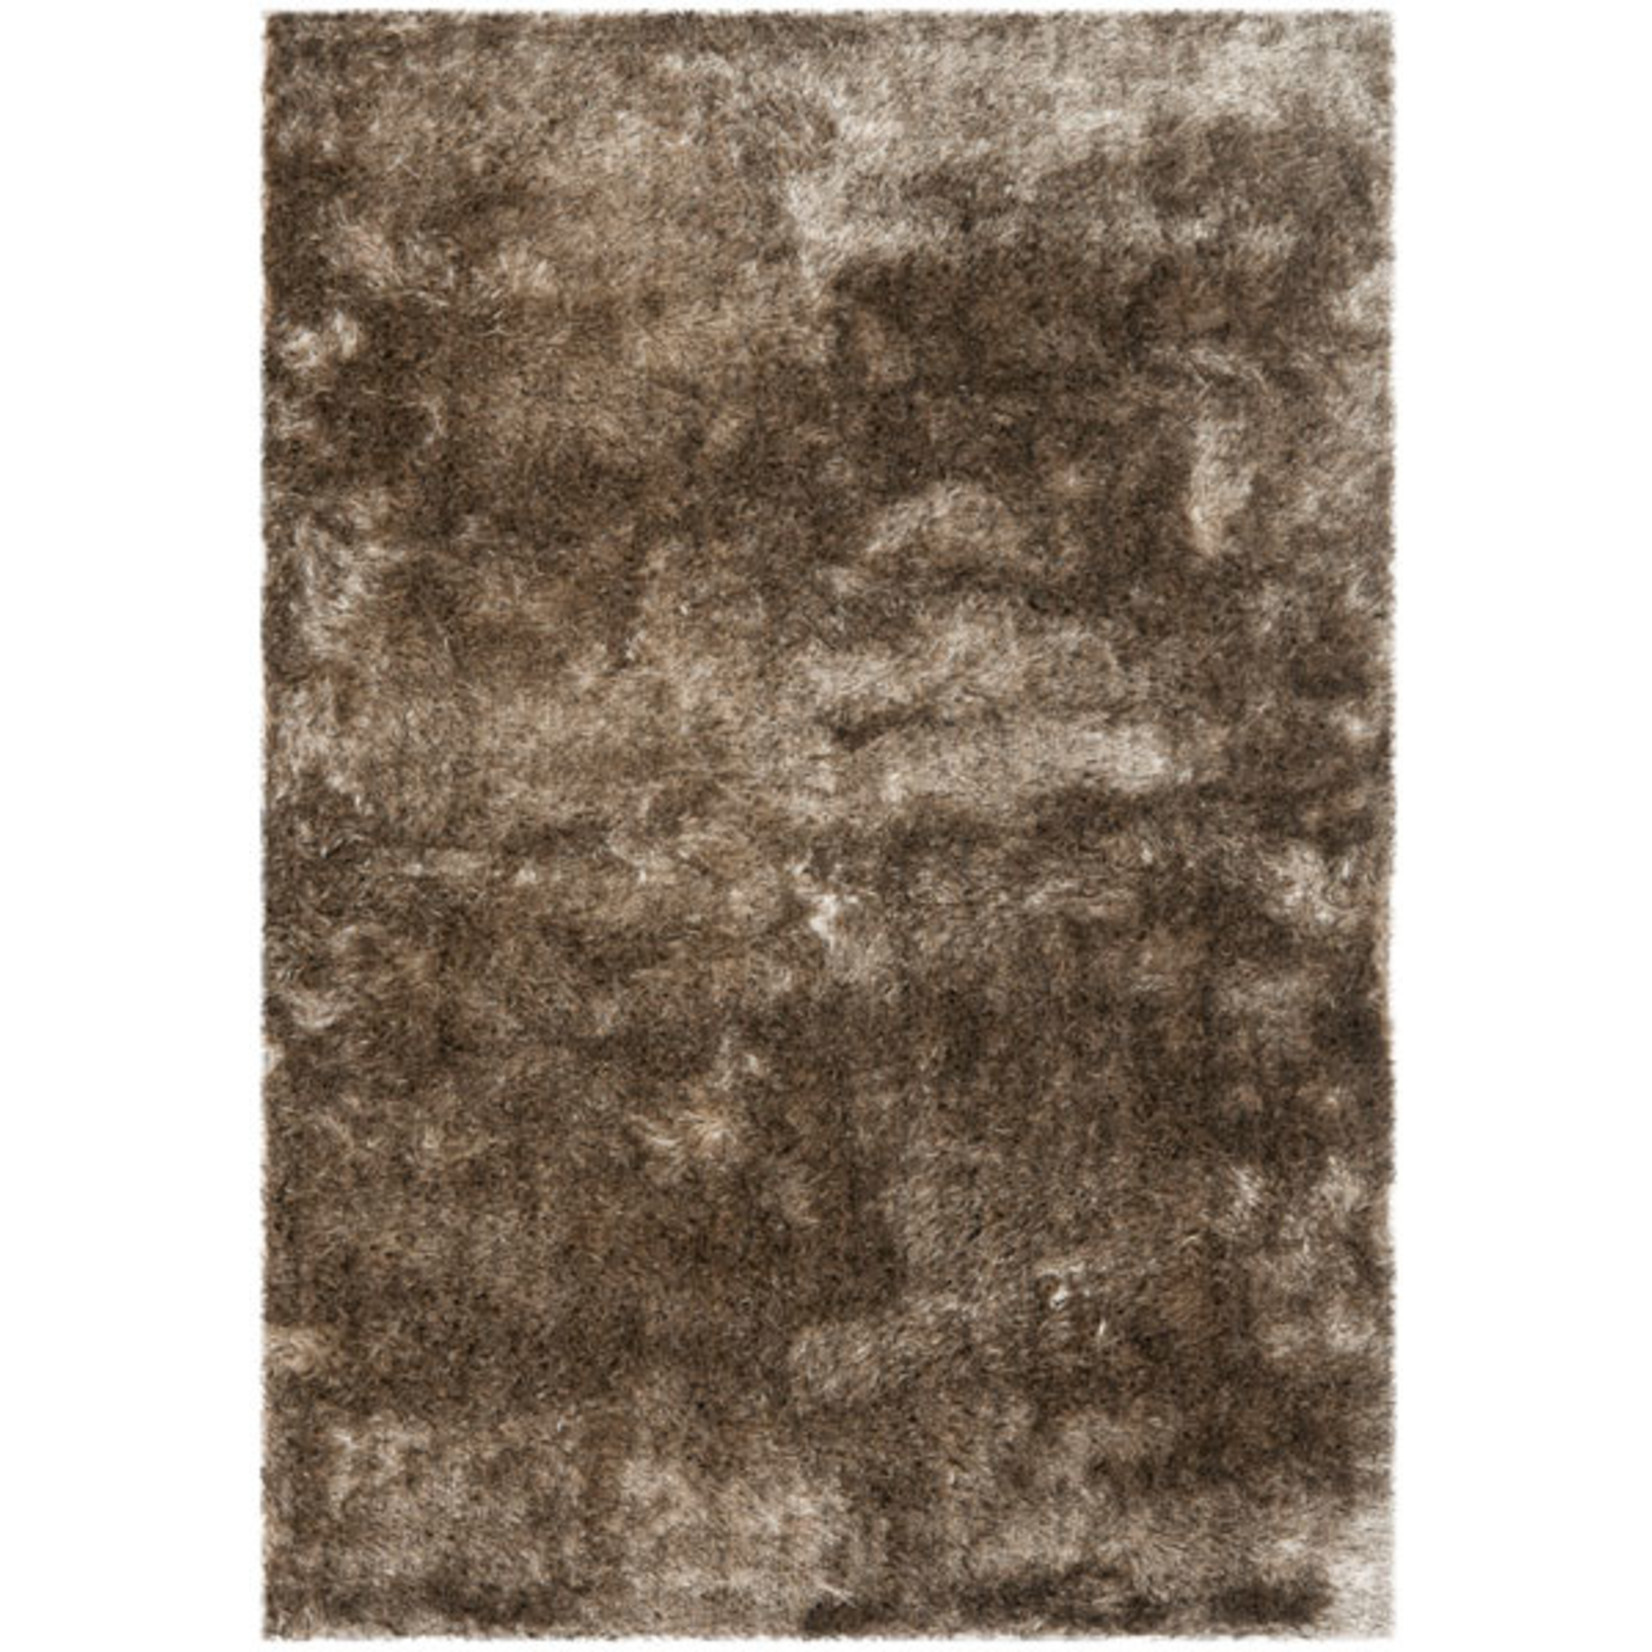 *4' x 6' - Montpelier Handmade Tufted Brown Area Rug